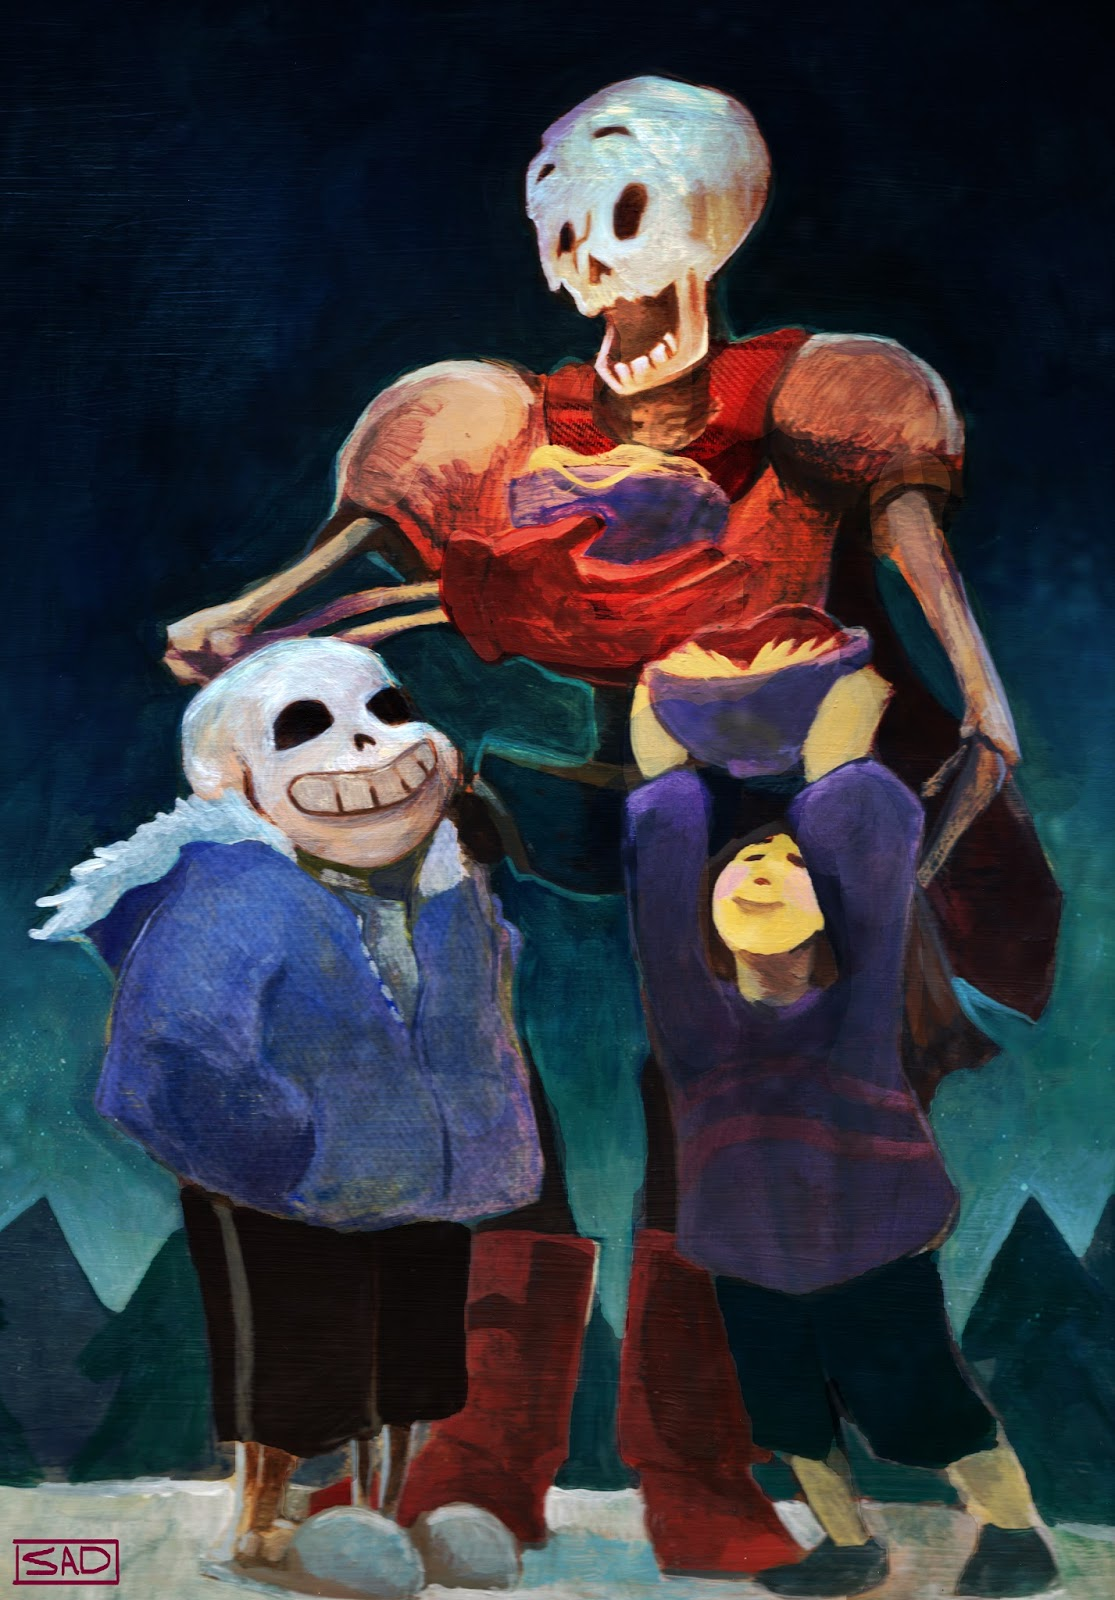 Waking up in Art school: Fanart Friday: Sans, Papyrus and Frisk from